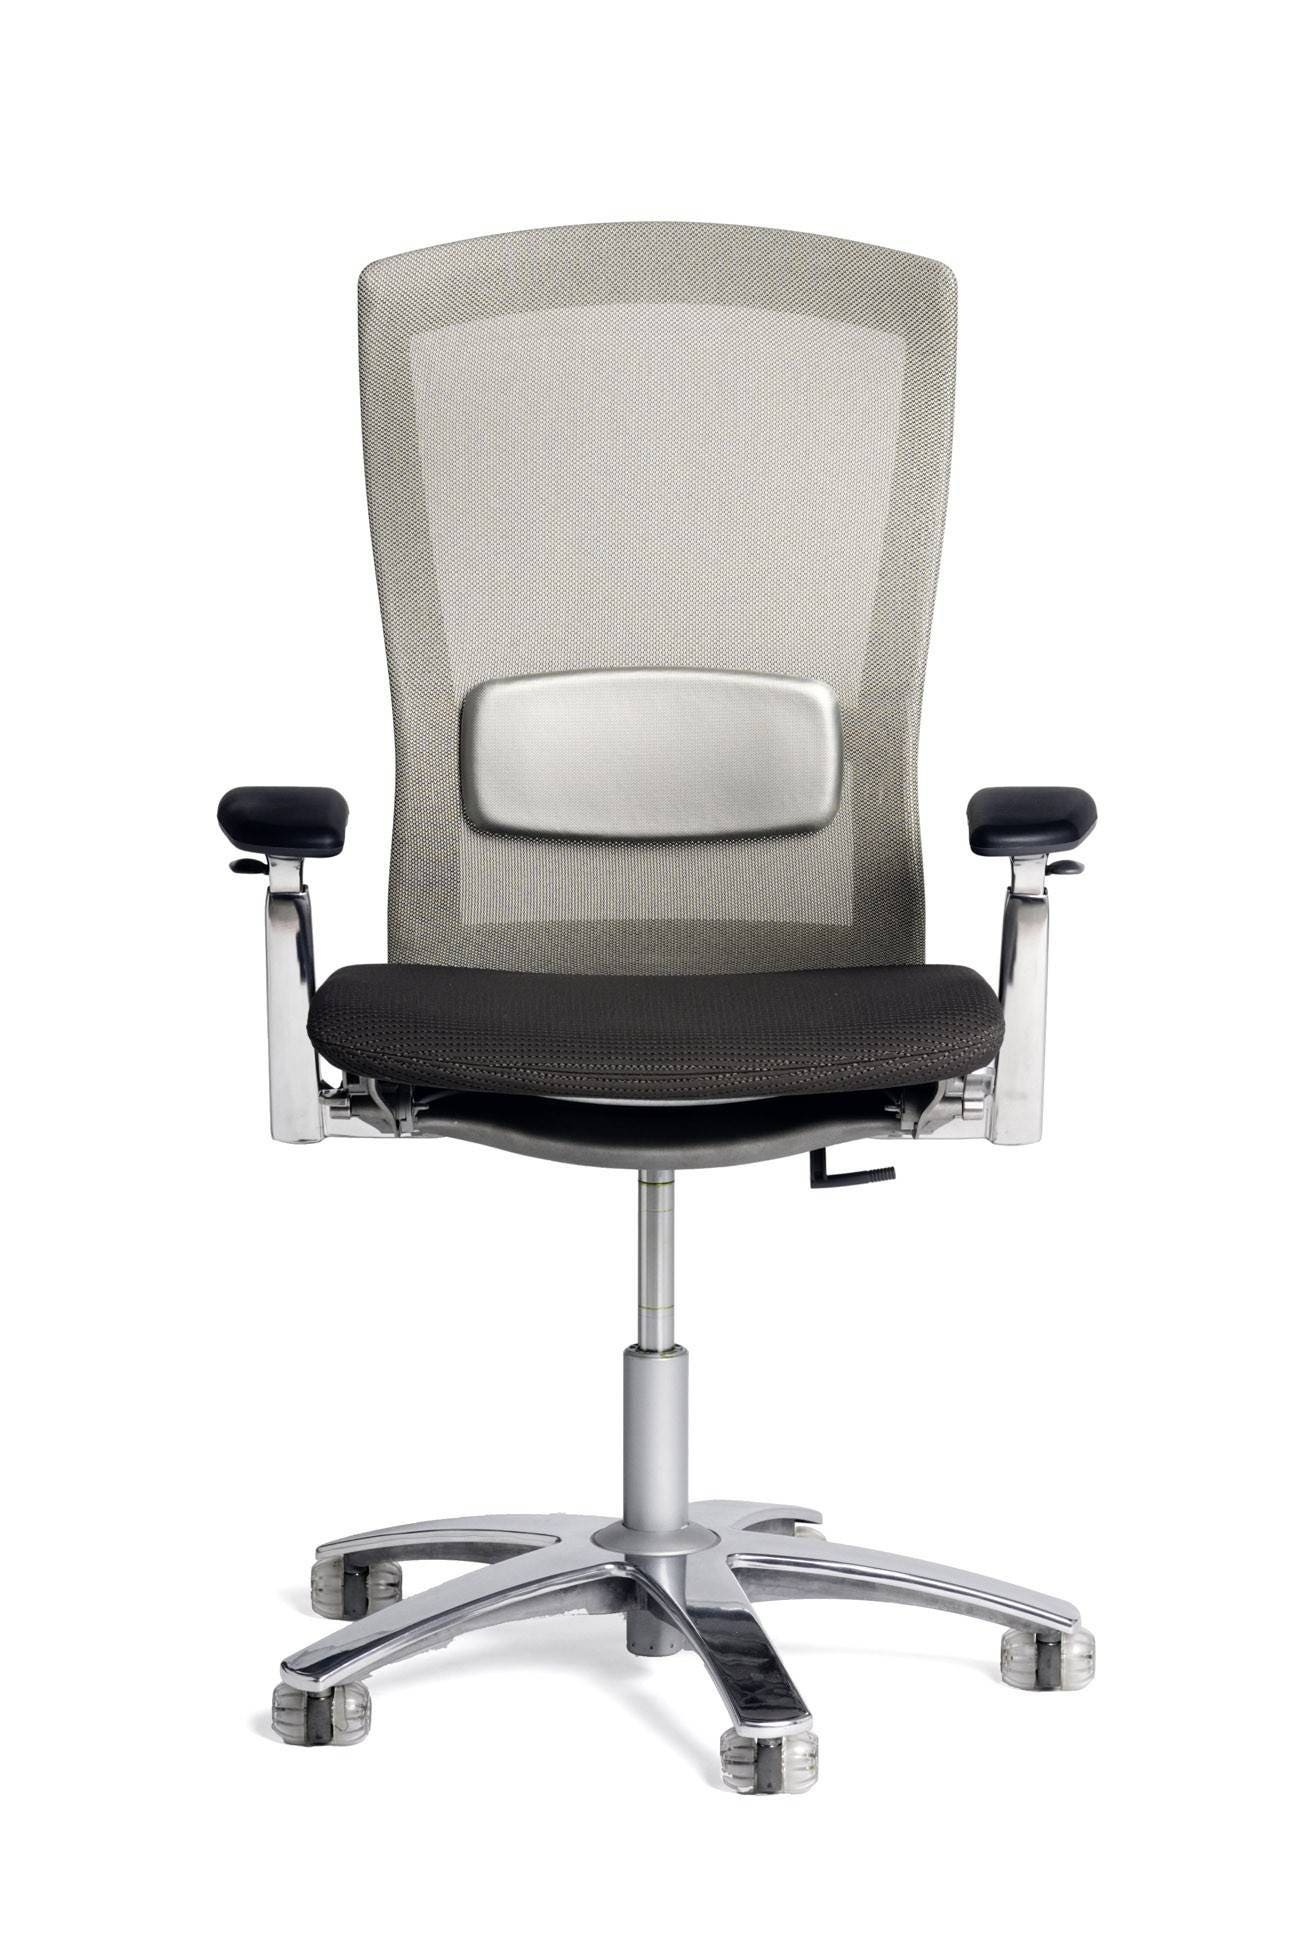 knoll life chairs. 1 Knoll Life Chairs